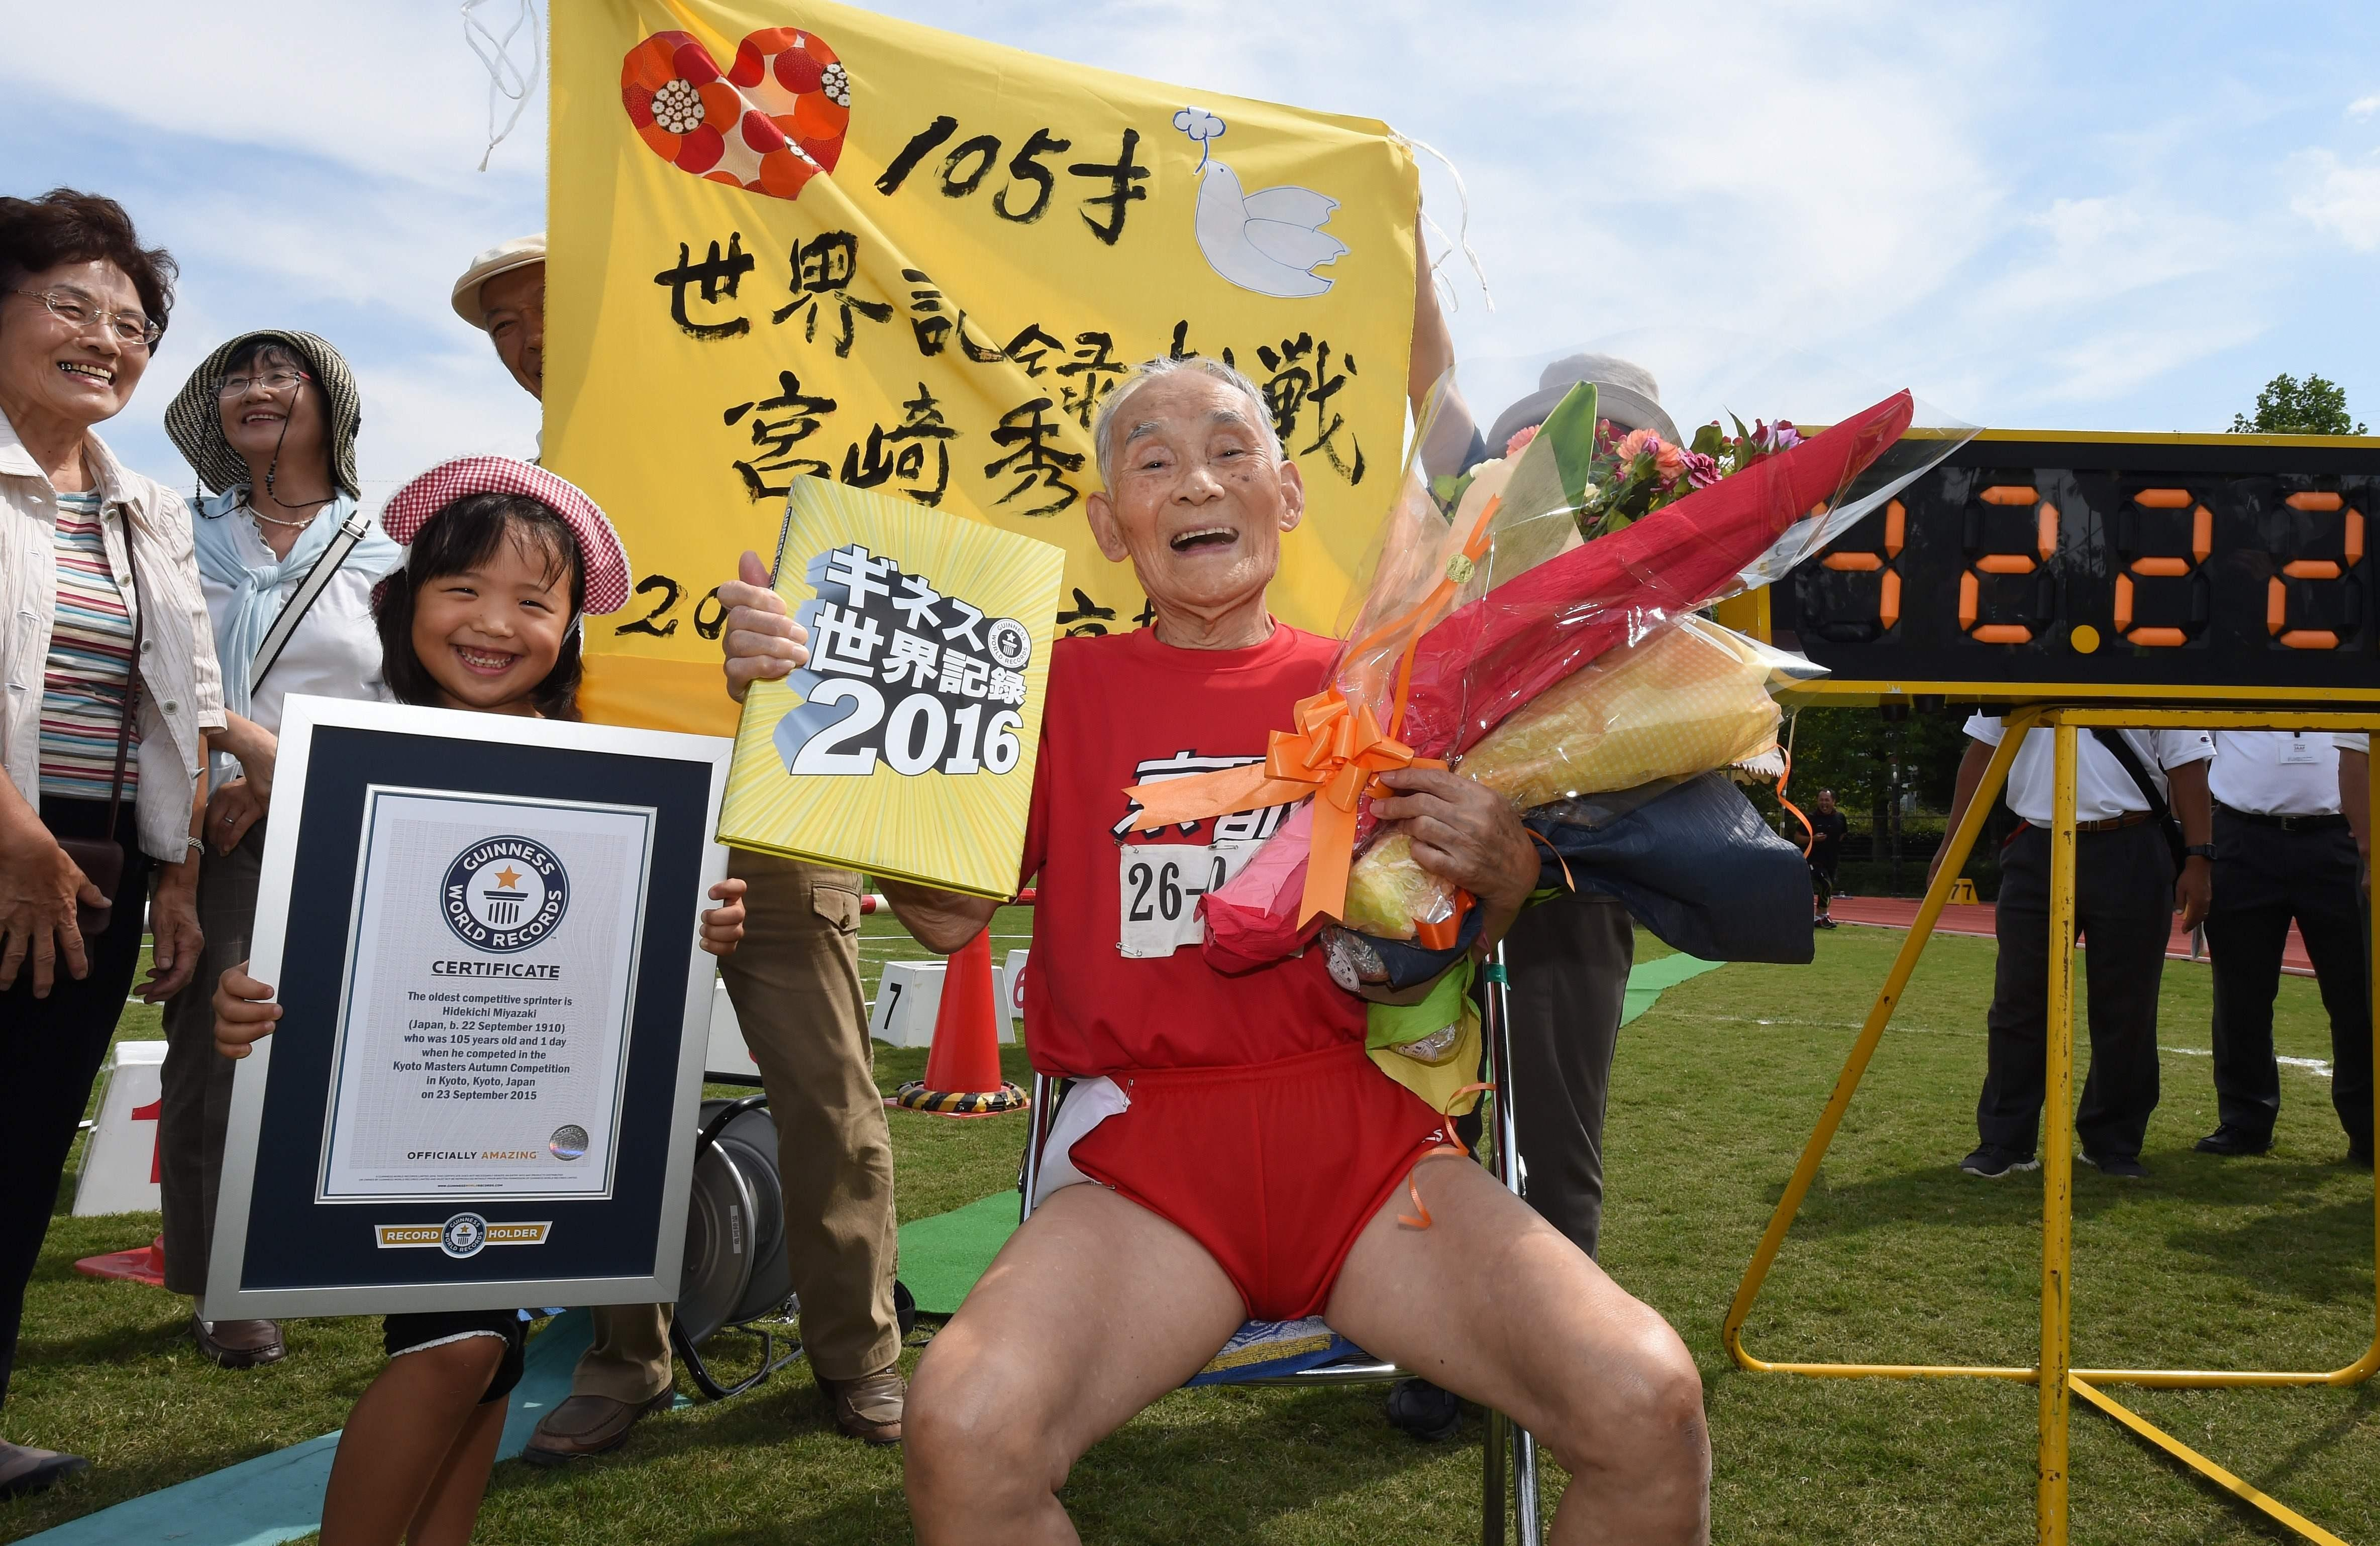 Hidekichi Miyazaki has died in Japan having set the 100m world record in the over 105 age group